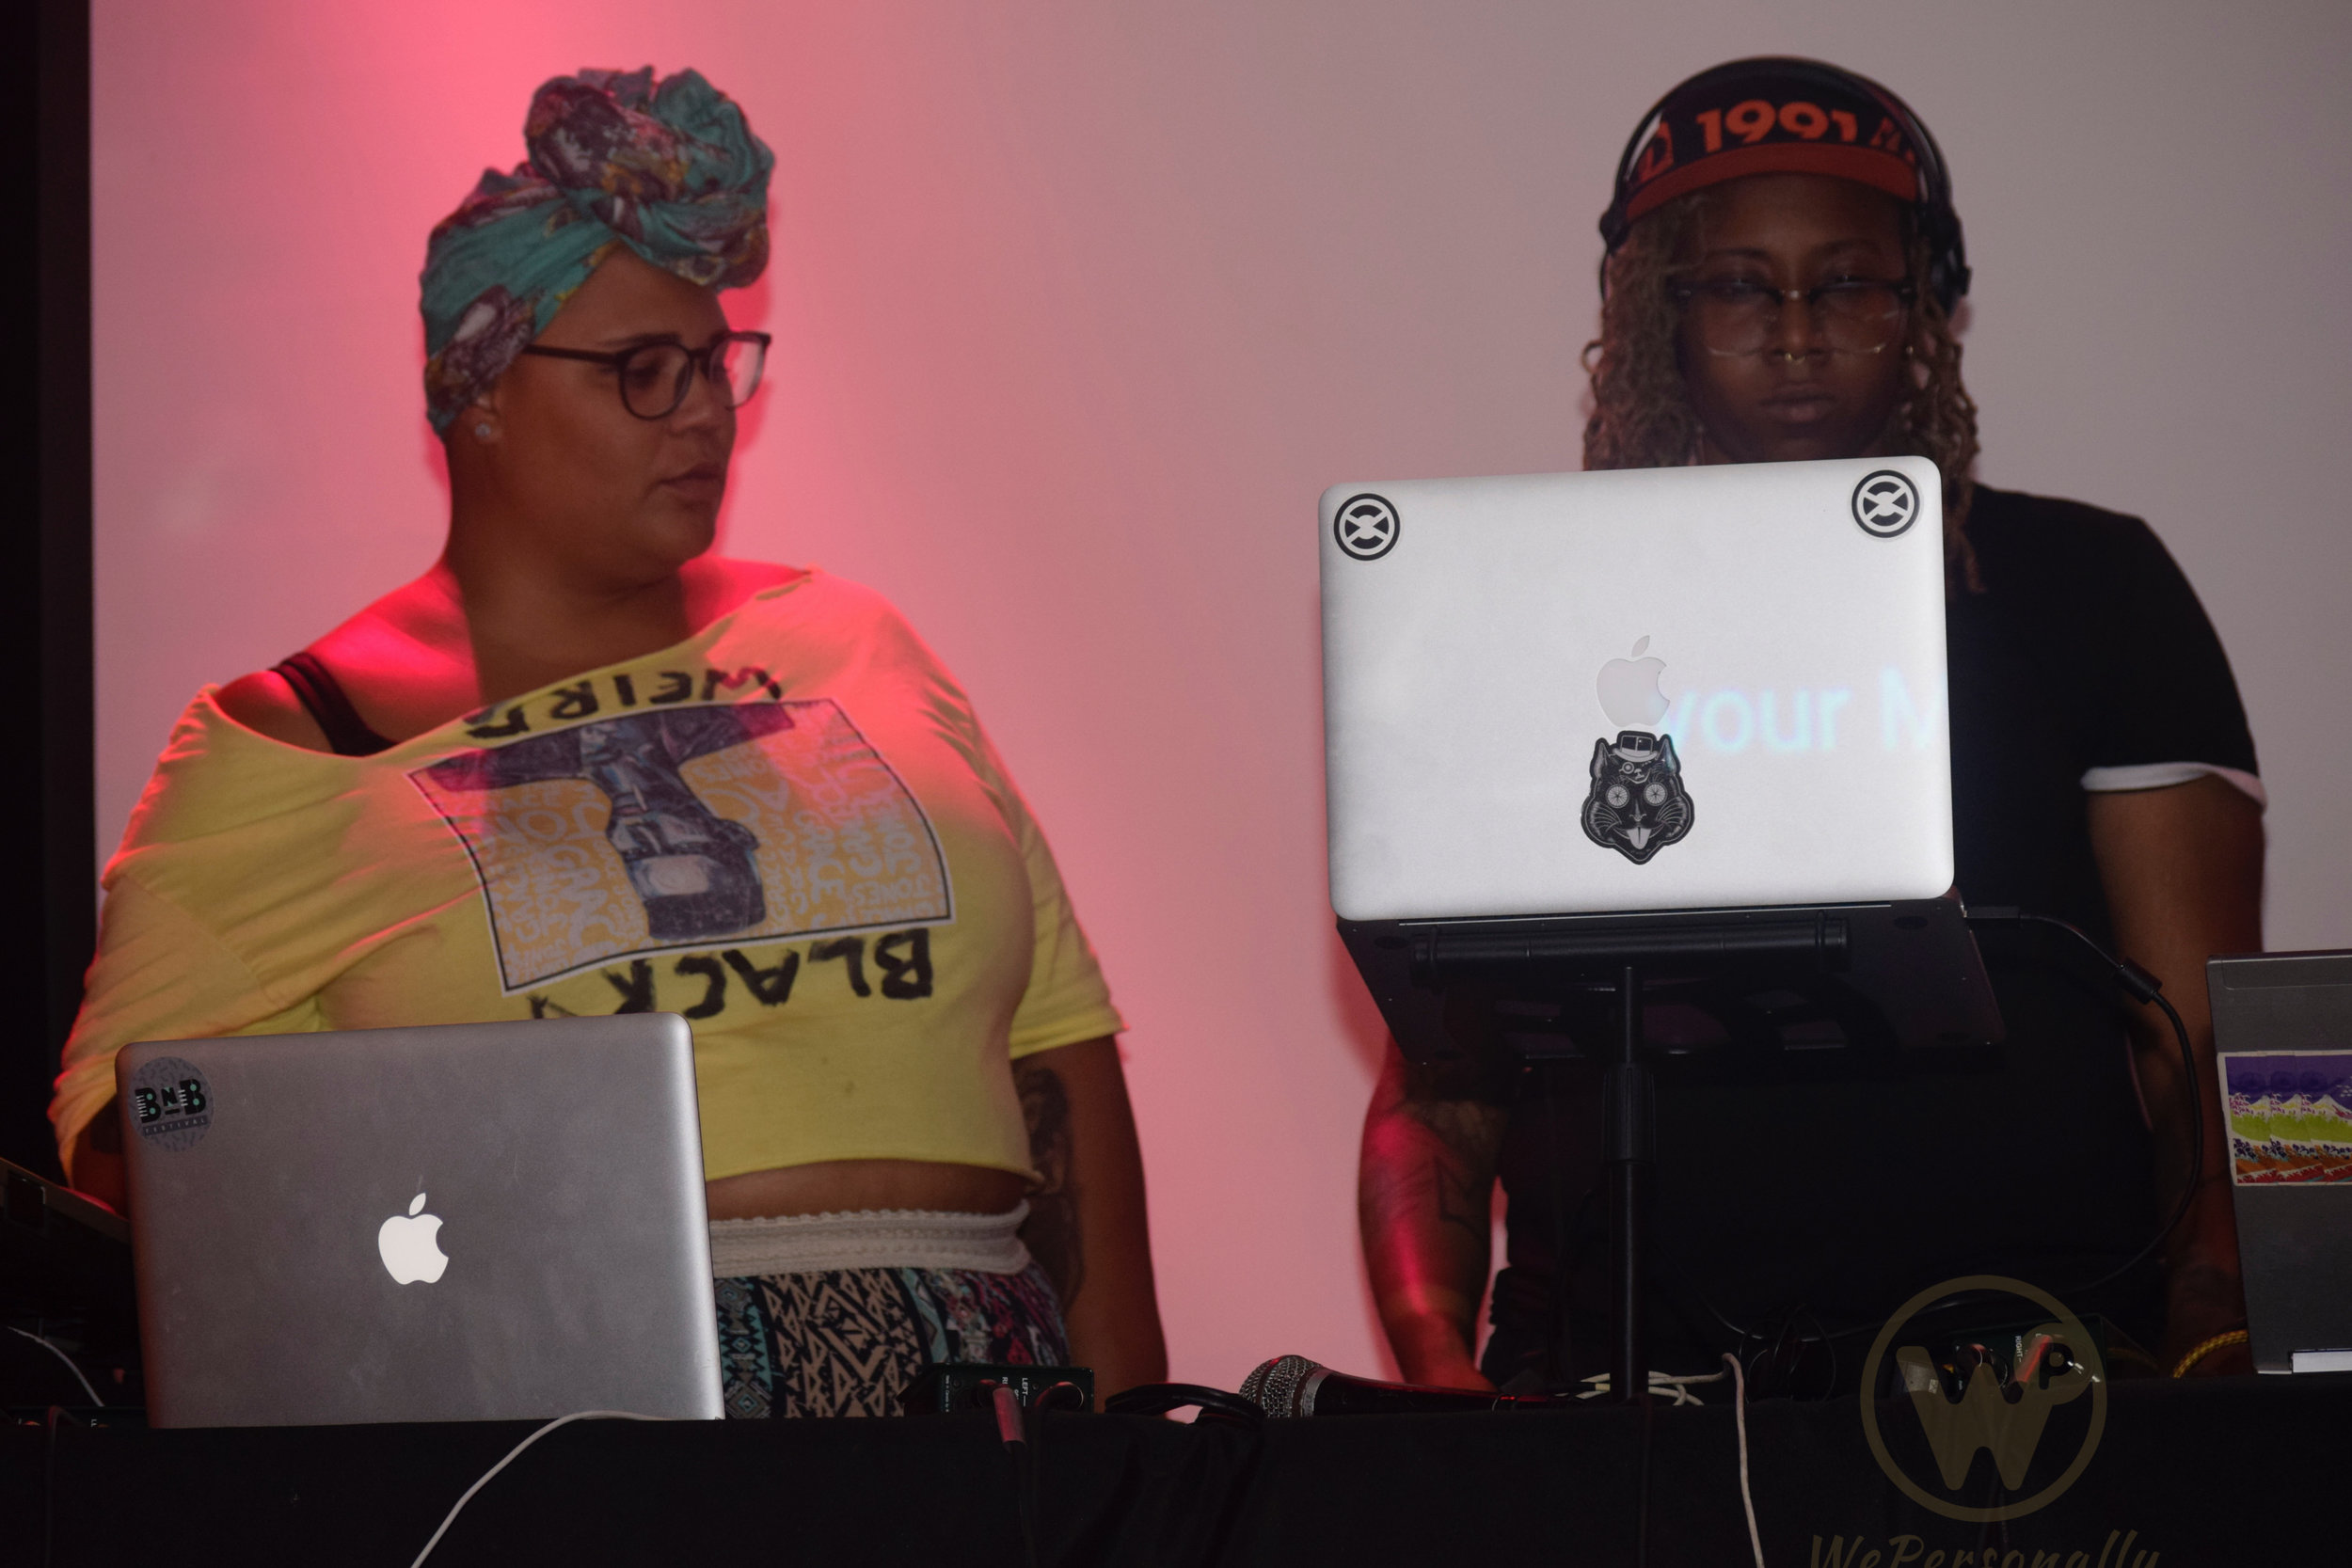 (Left) Conjure Event & Summer of Weirdos Curator and Artist Gemynii